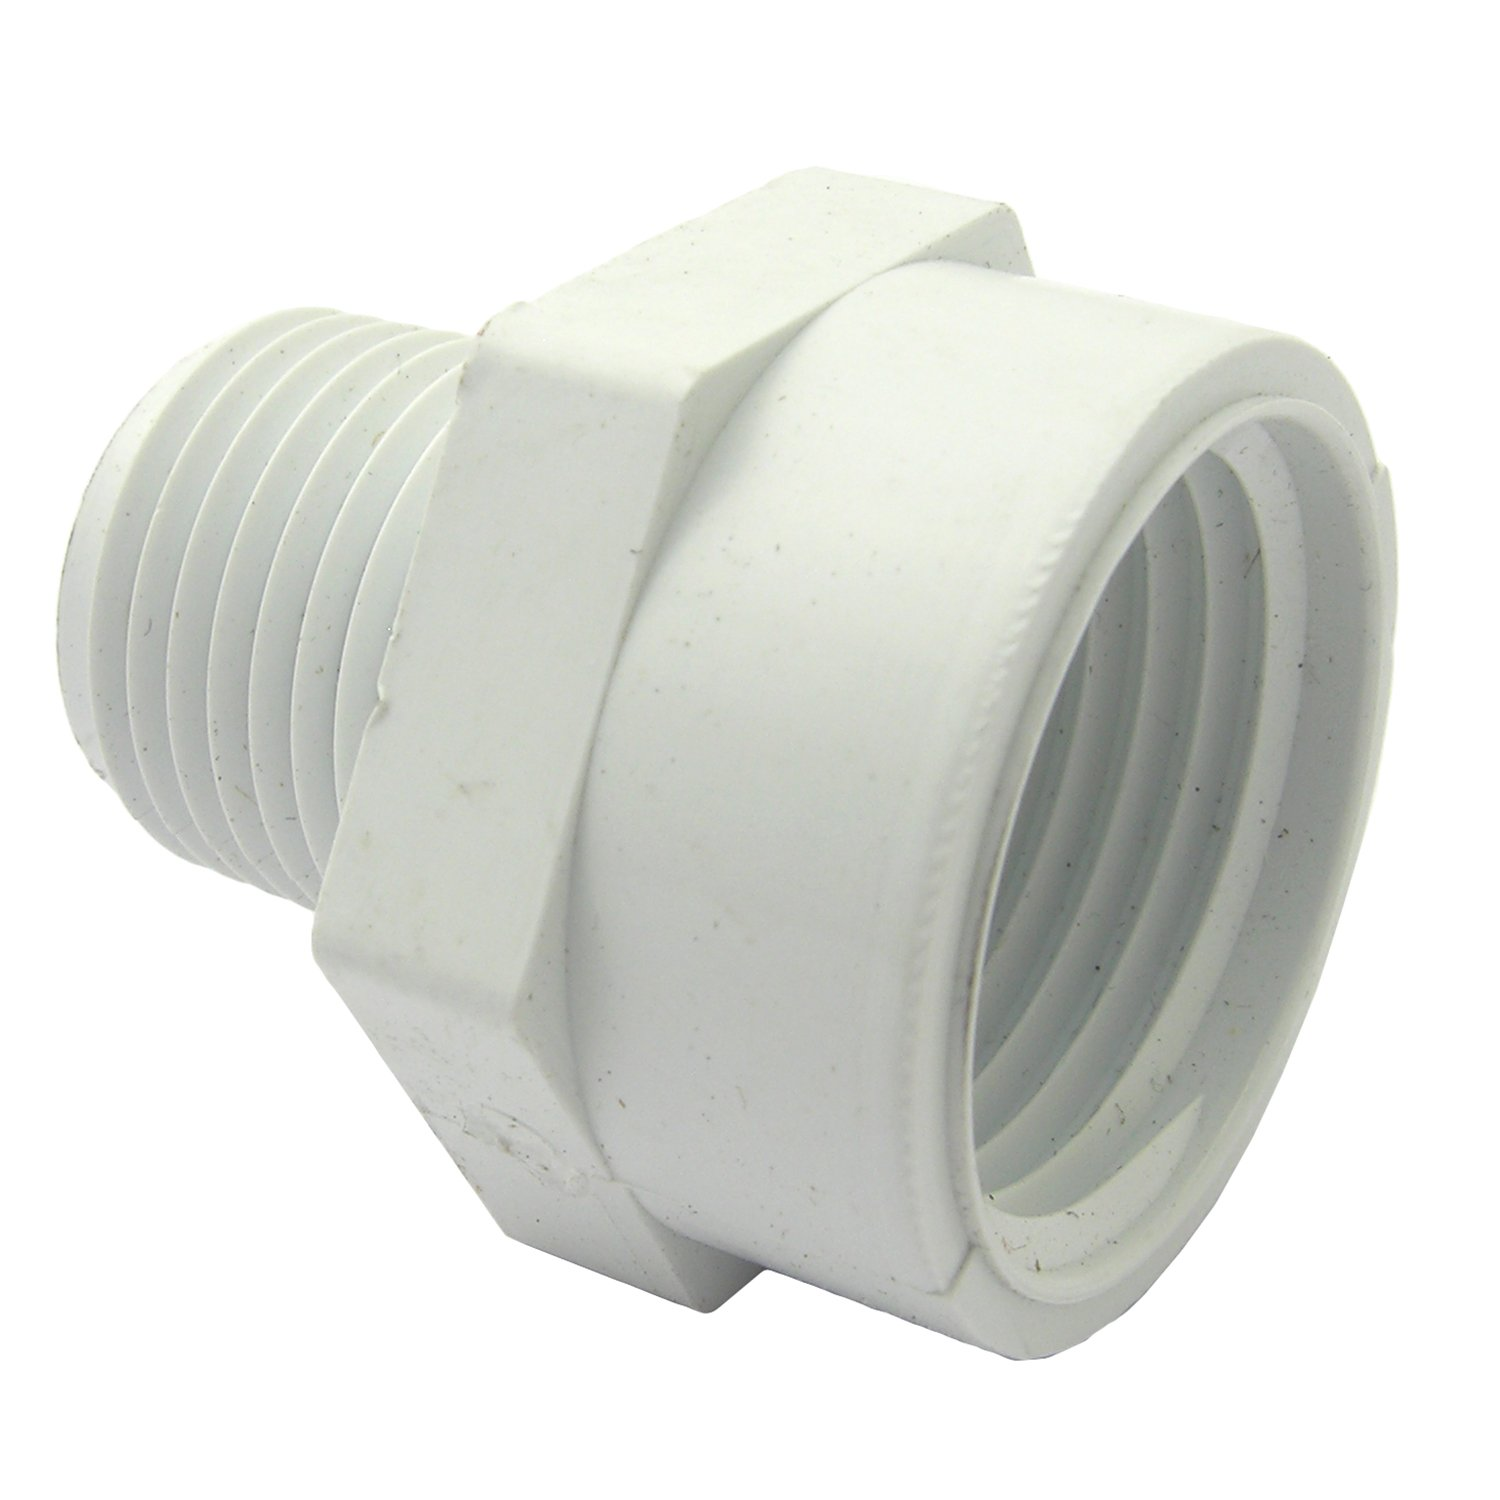 LASCO 15-1635 PVC Hose Adapter with 3/4-Inch Female Hose Thread and 1/2-Inch Male Pipe Thread